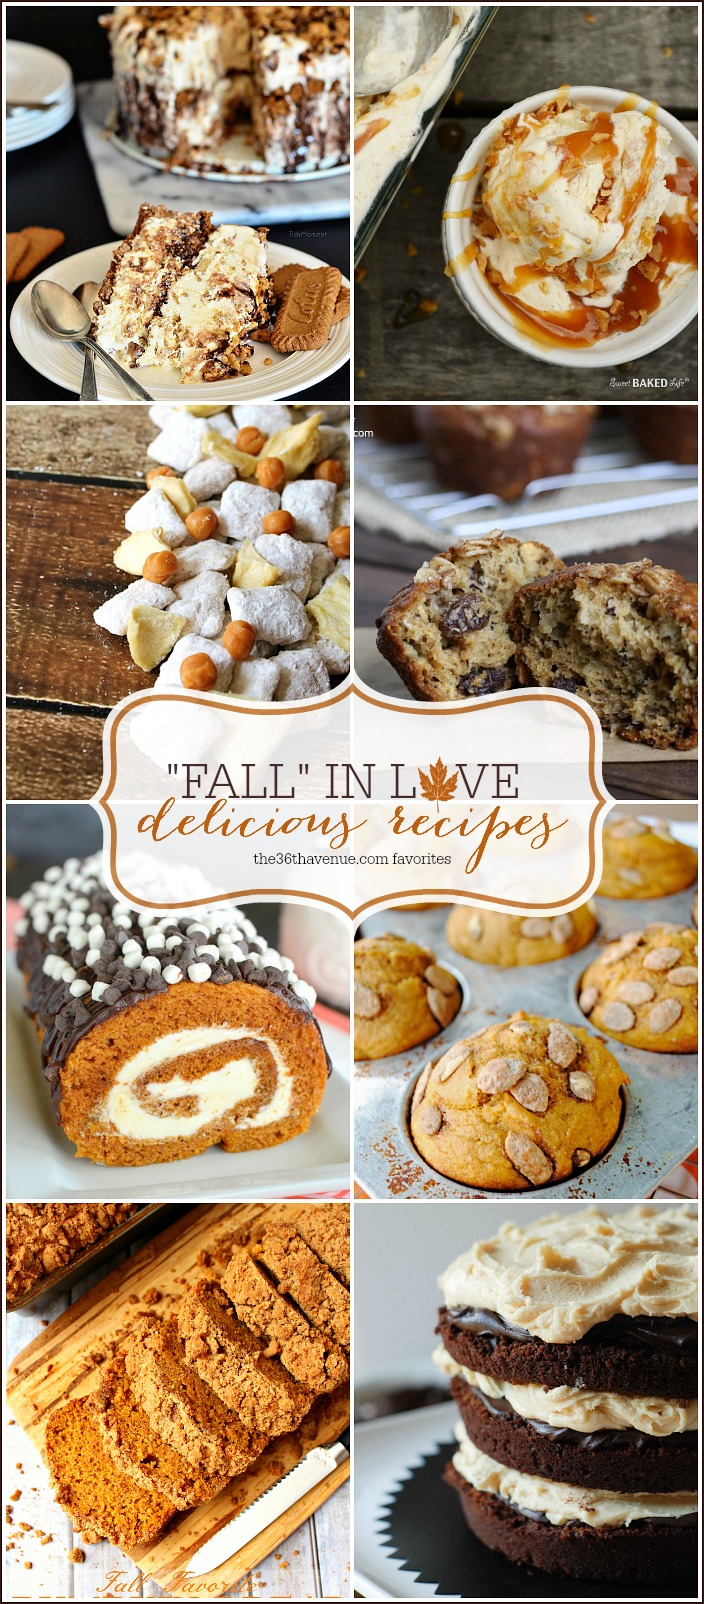 Fall Recipes at the36thavenue.com